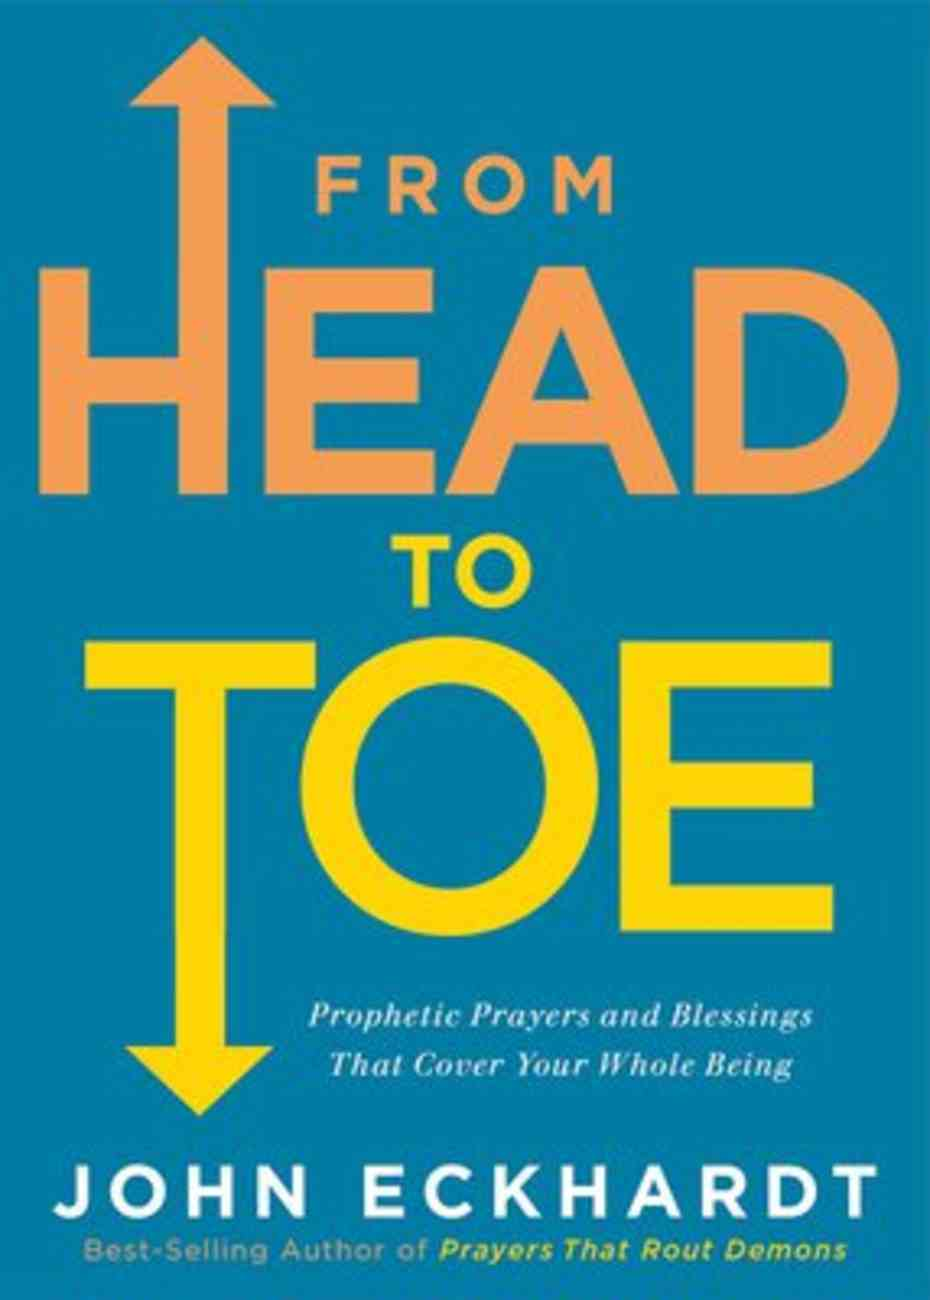 From Head to Toe: Prophetic Prayers and Blessings That Cover Your Whole Being Paperback